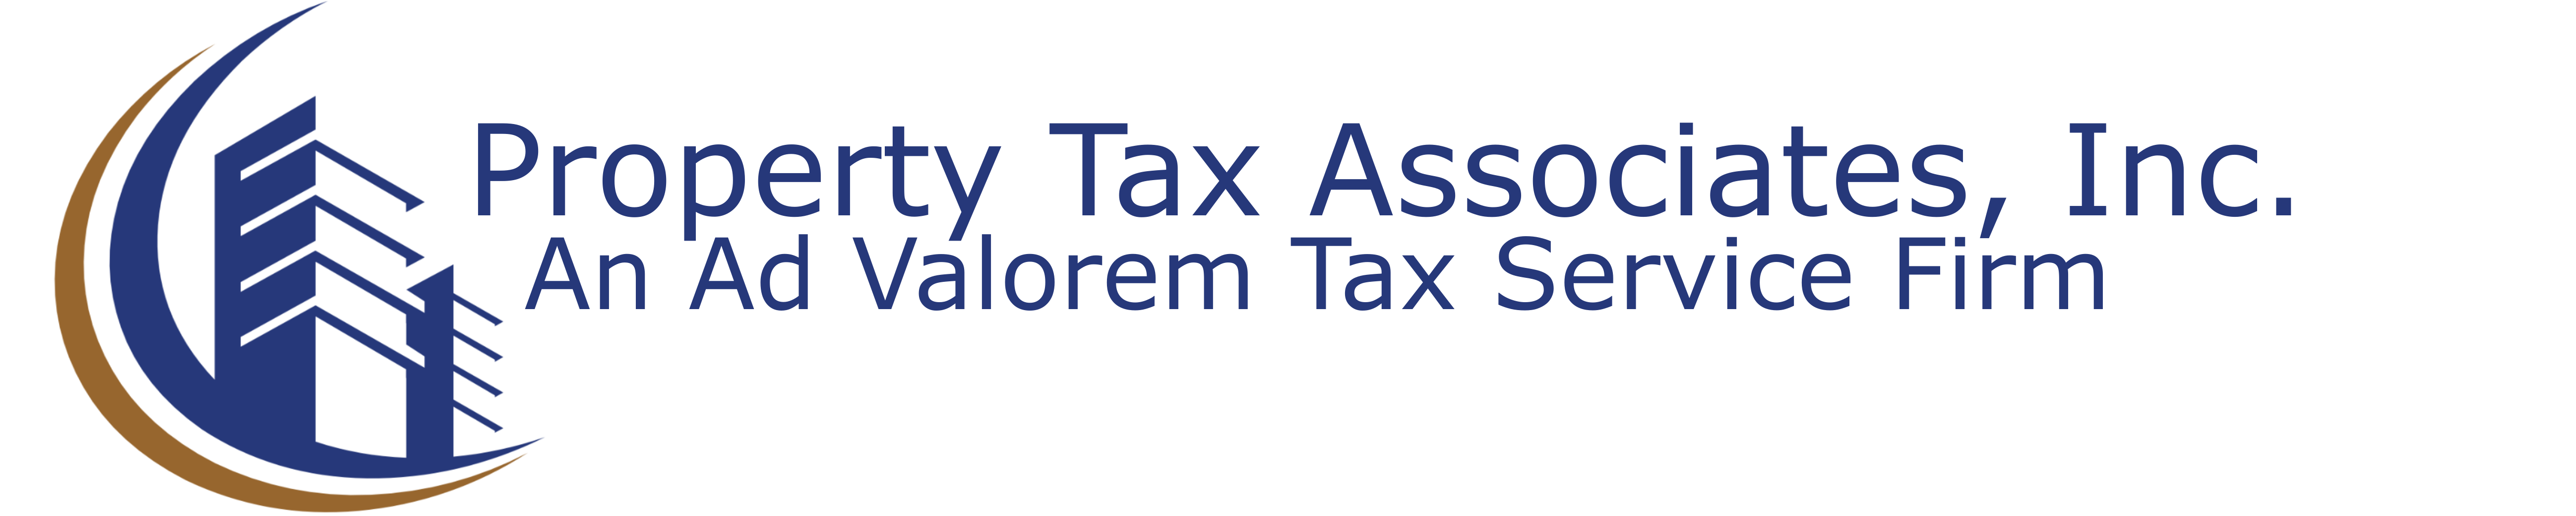 Property Tax Associates, Inc.